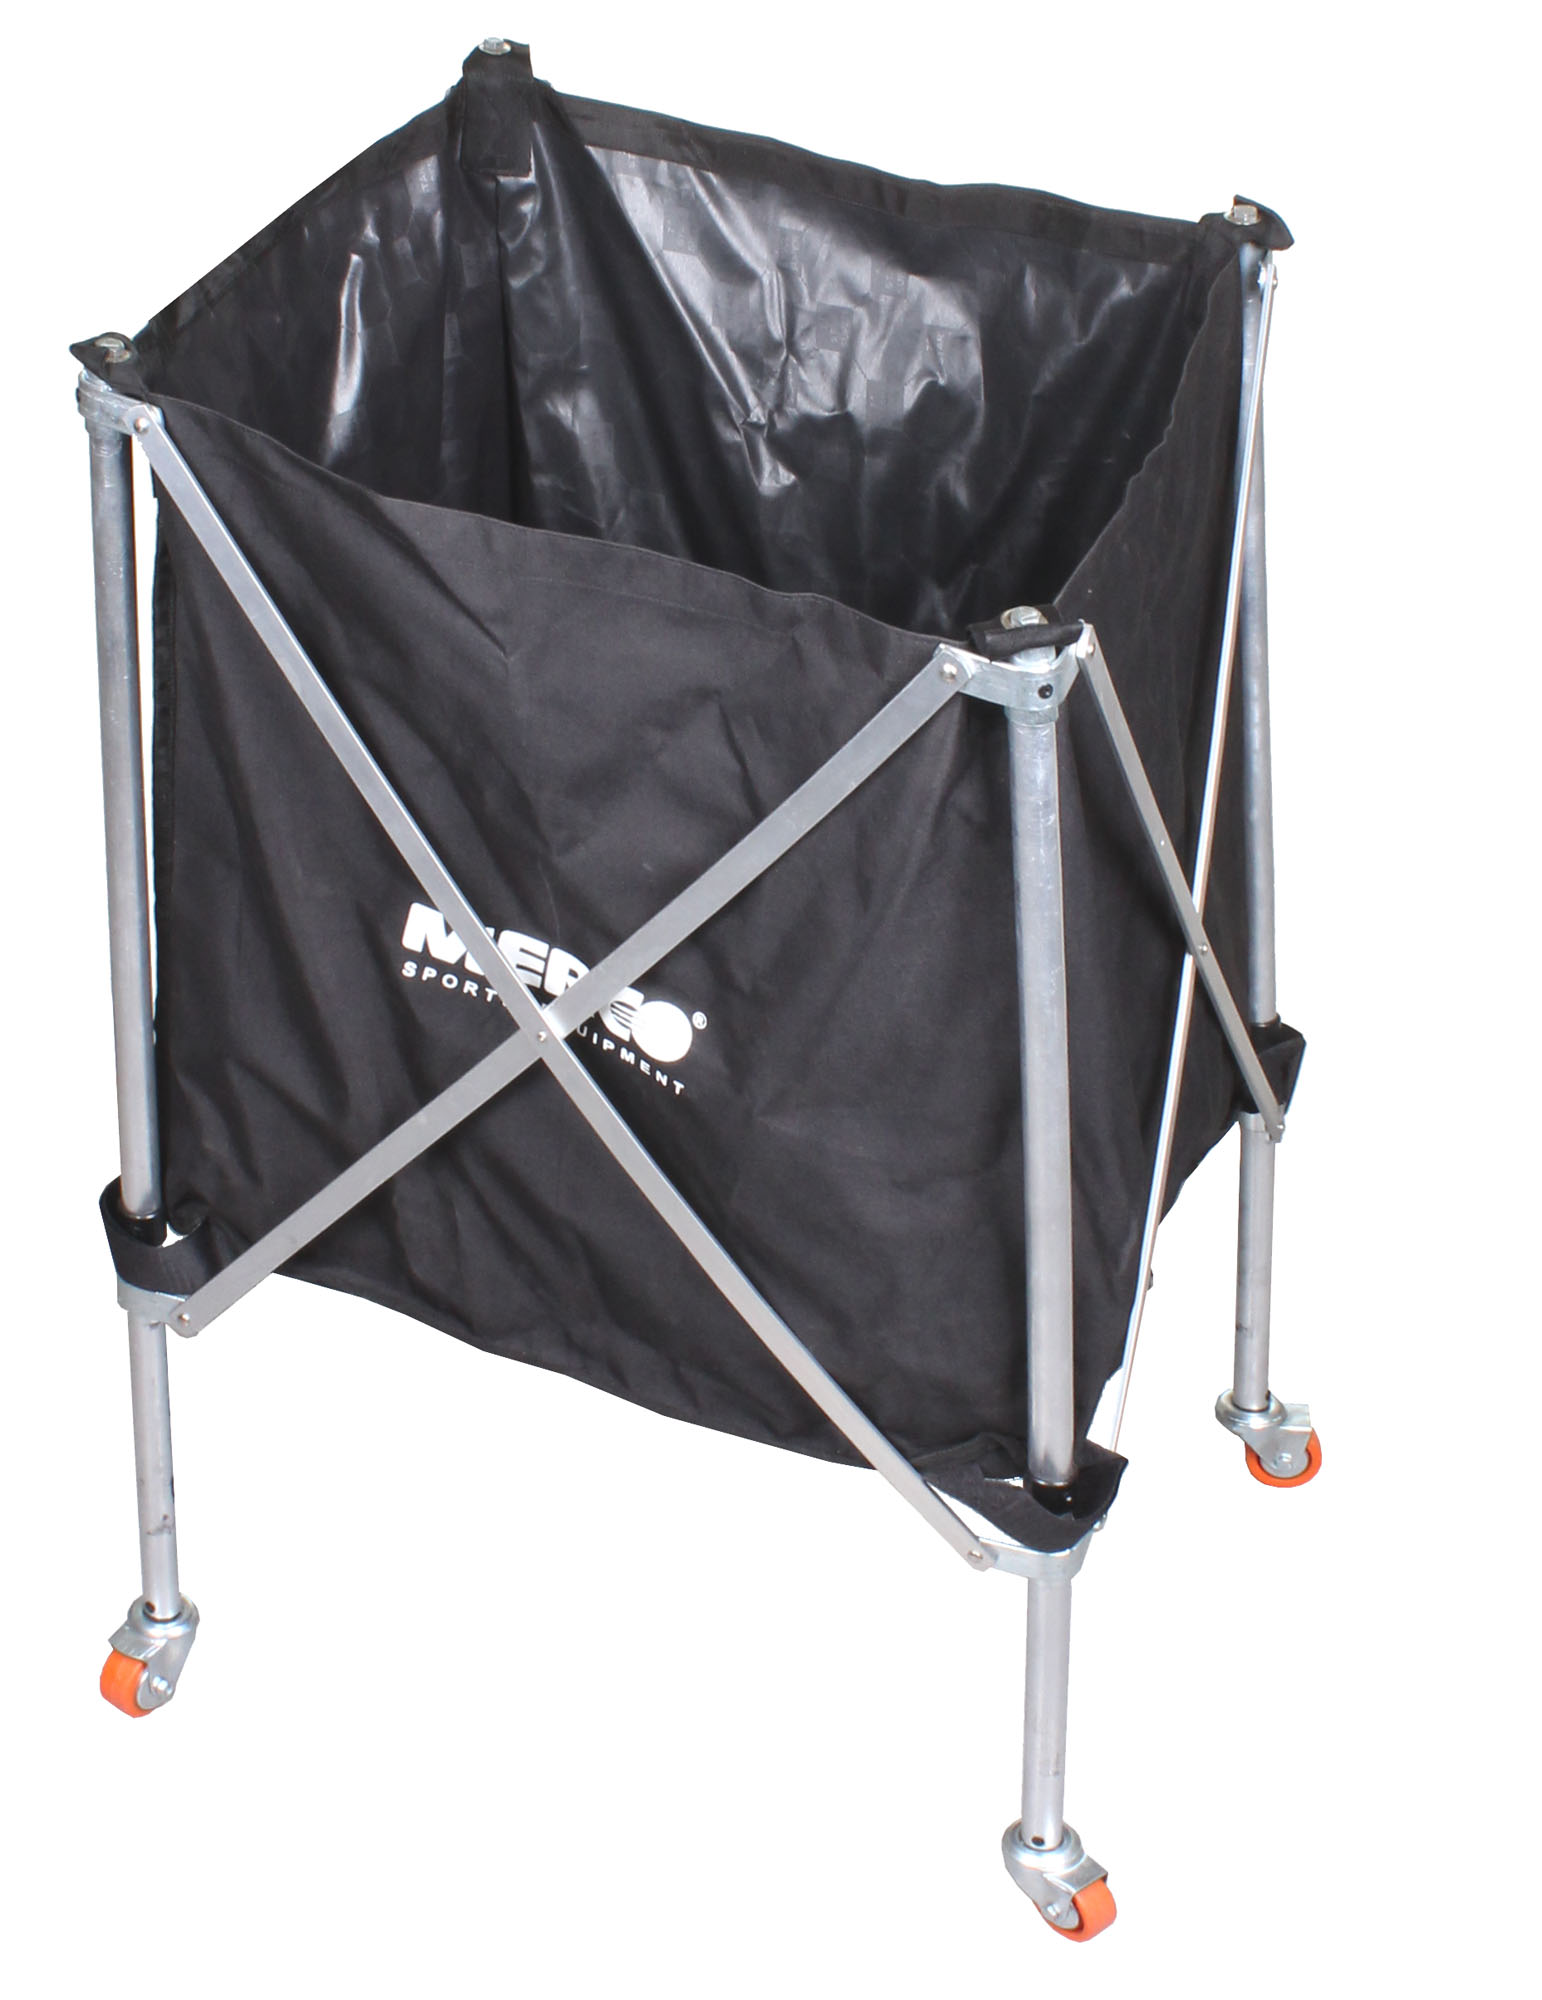 Merco Easy fold cart